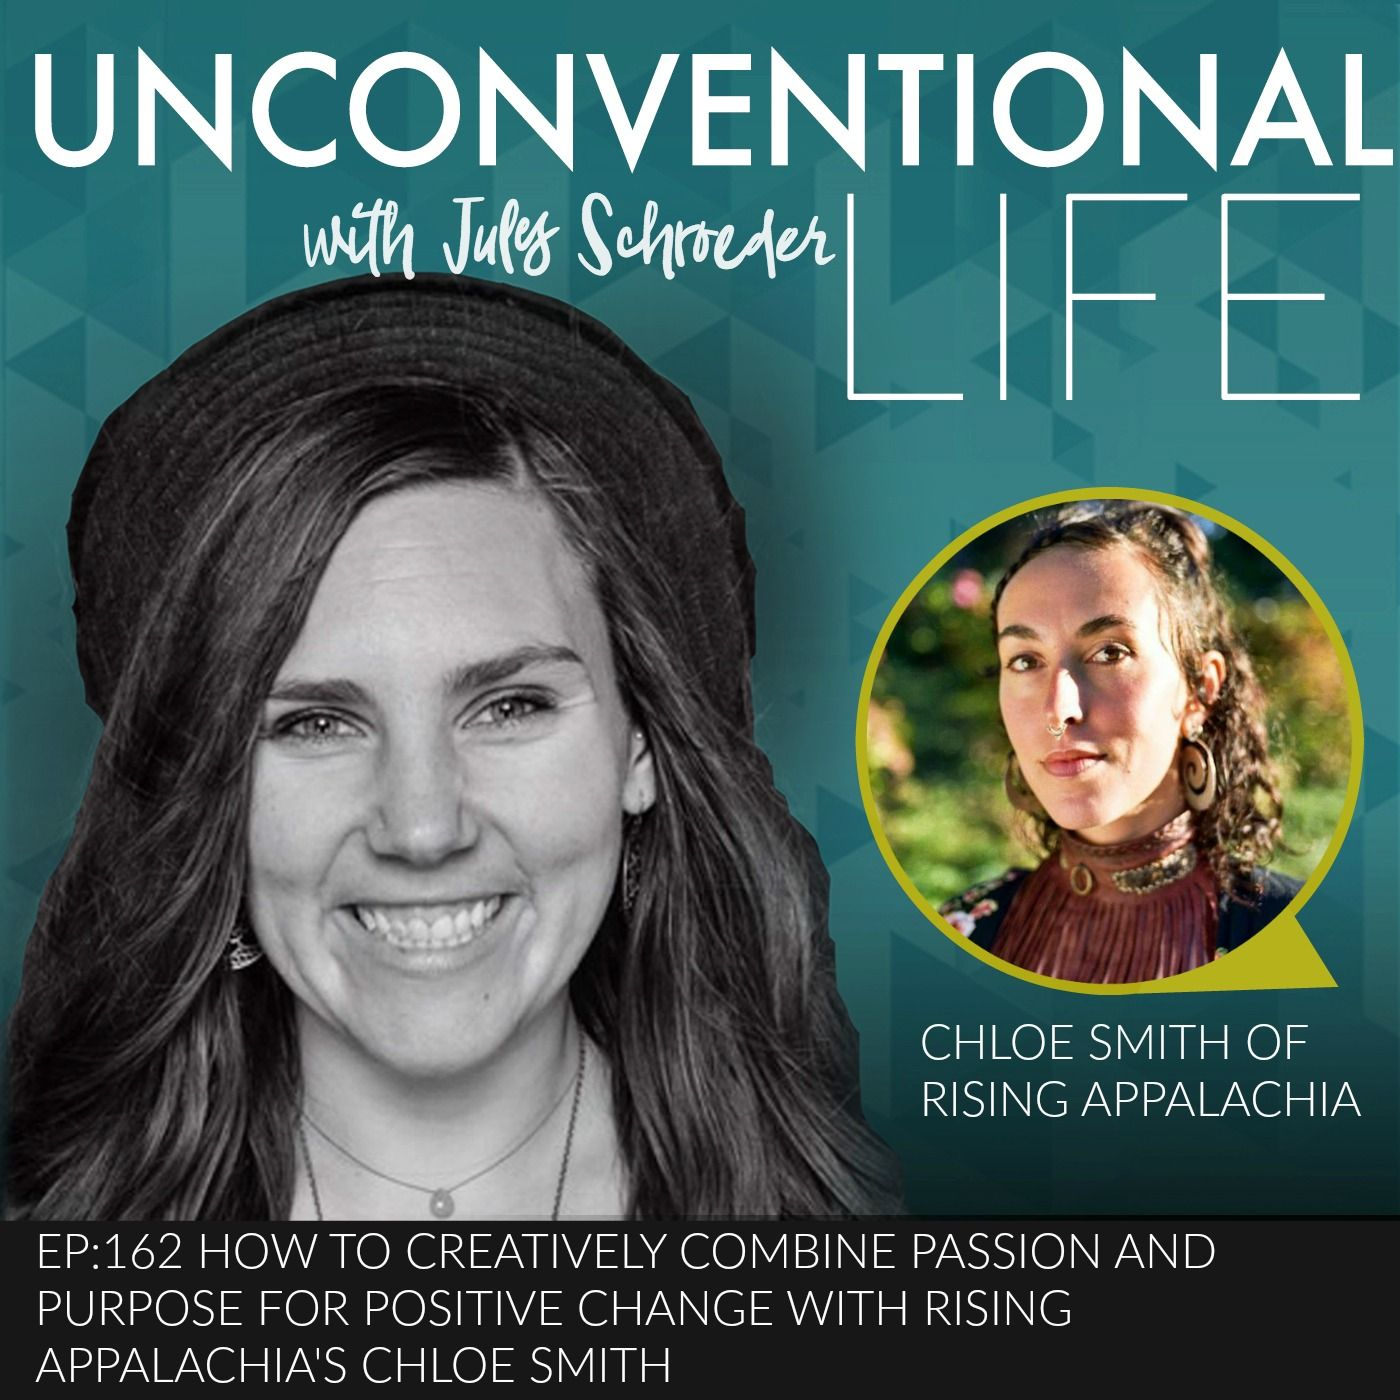 EP:162 How to Creatively Combine Passion and Purpose for Positive Change with Rising Appalachia's Chloe Smith